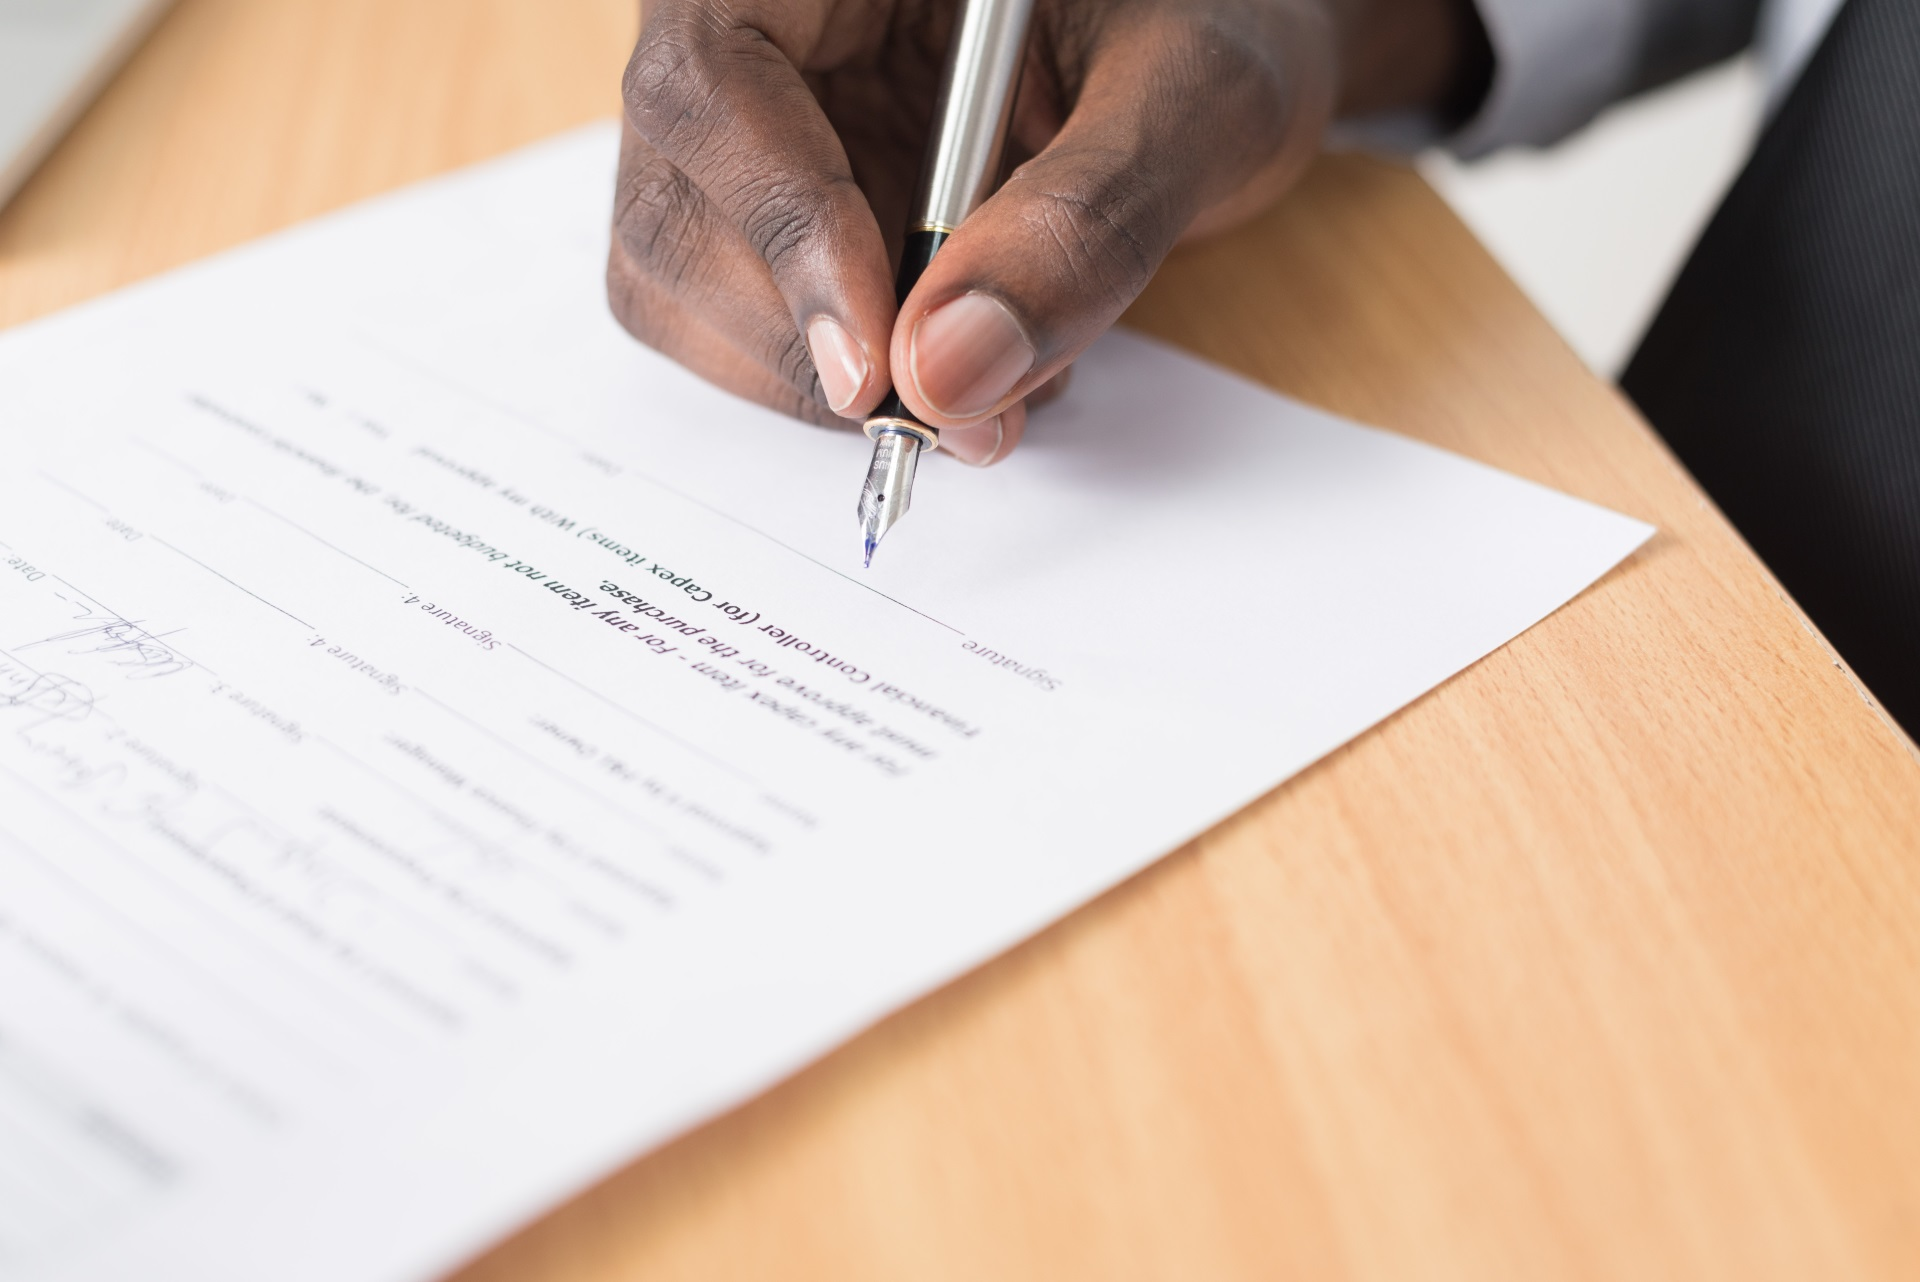 Things to Know Before You Sign that Music Contract